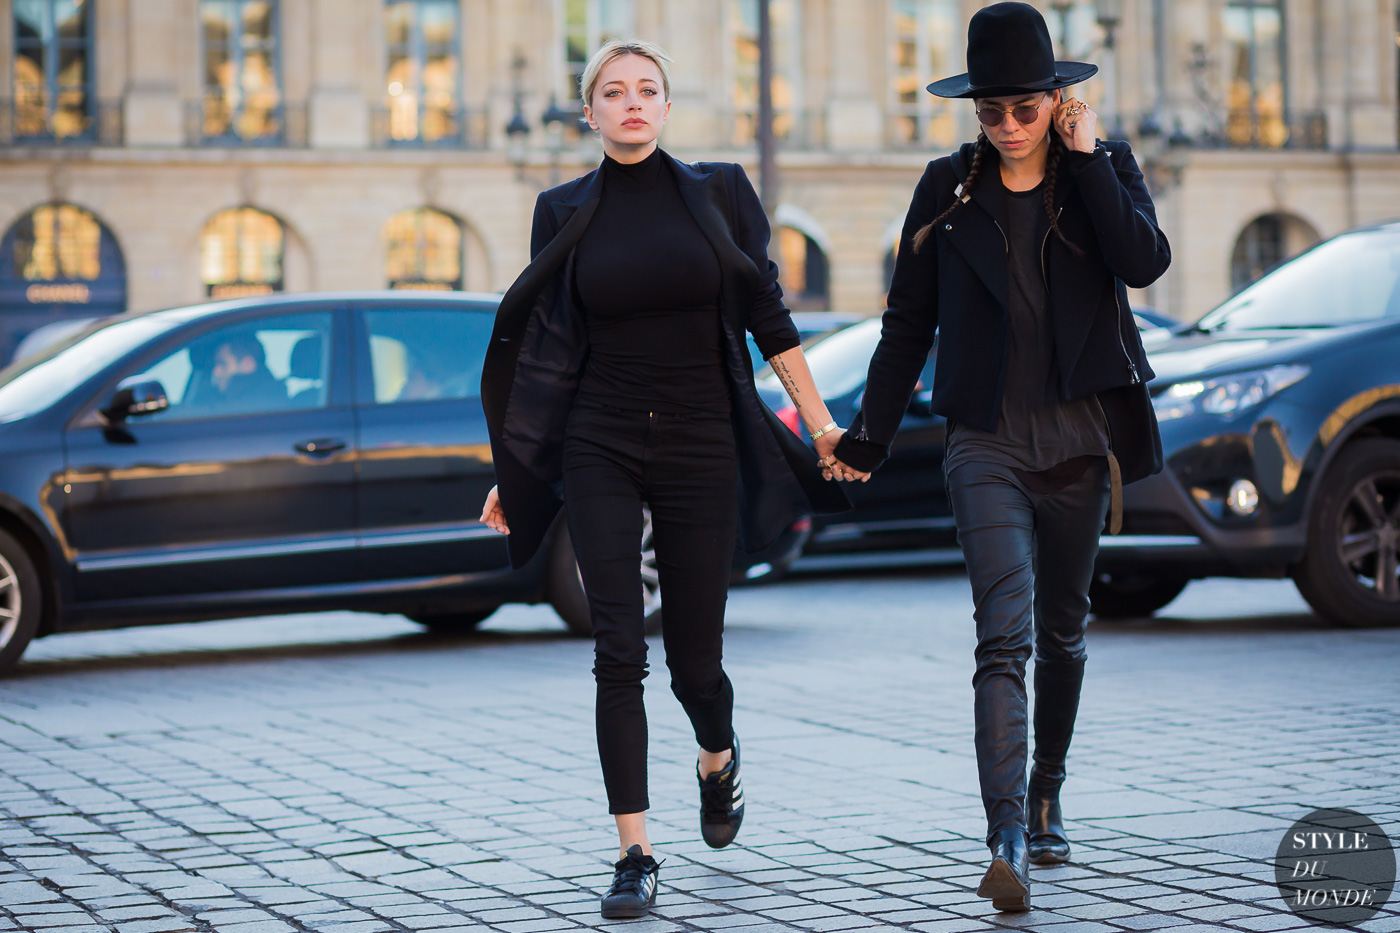 Caroline Vreeland and Tasya van Ree Street Style Street Fashion Streetsnaps by STYLEDUMONDE Street Style Fashion Photography